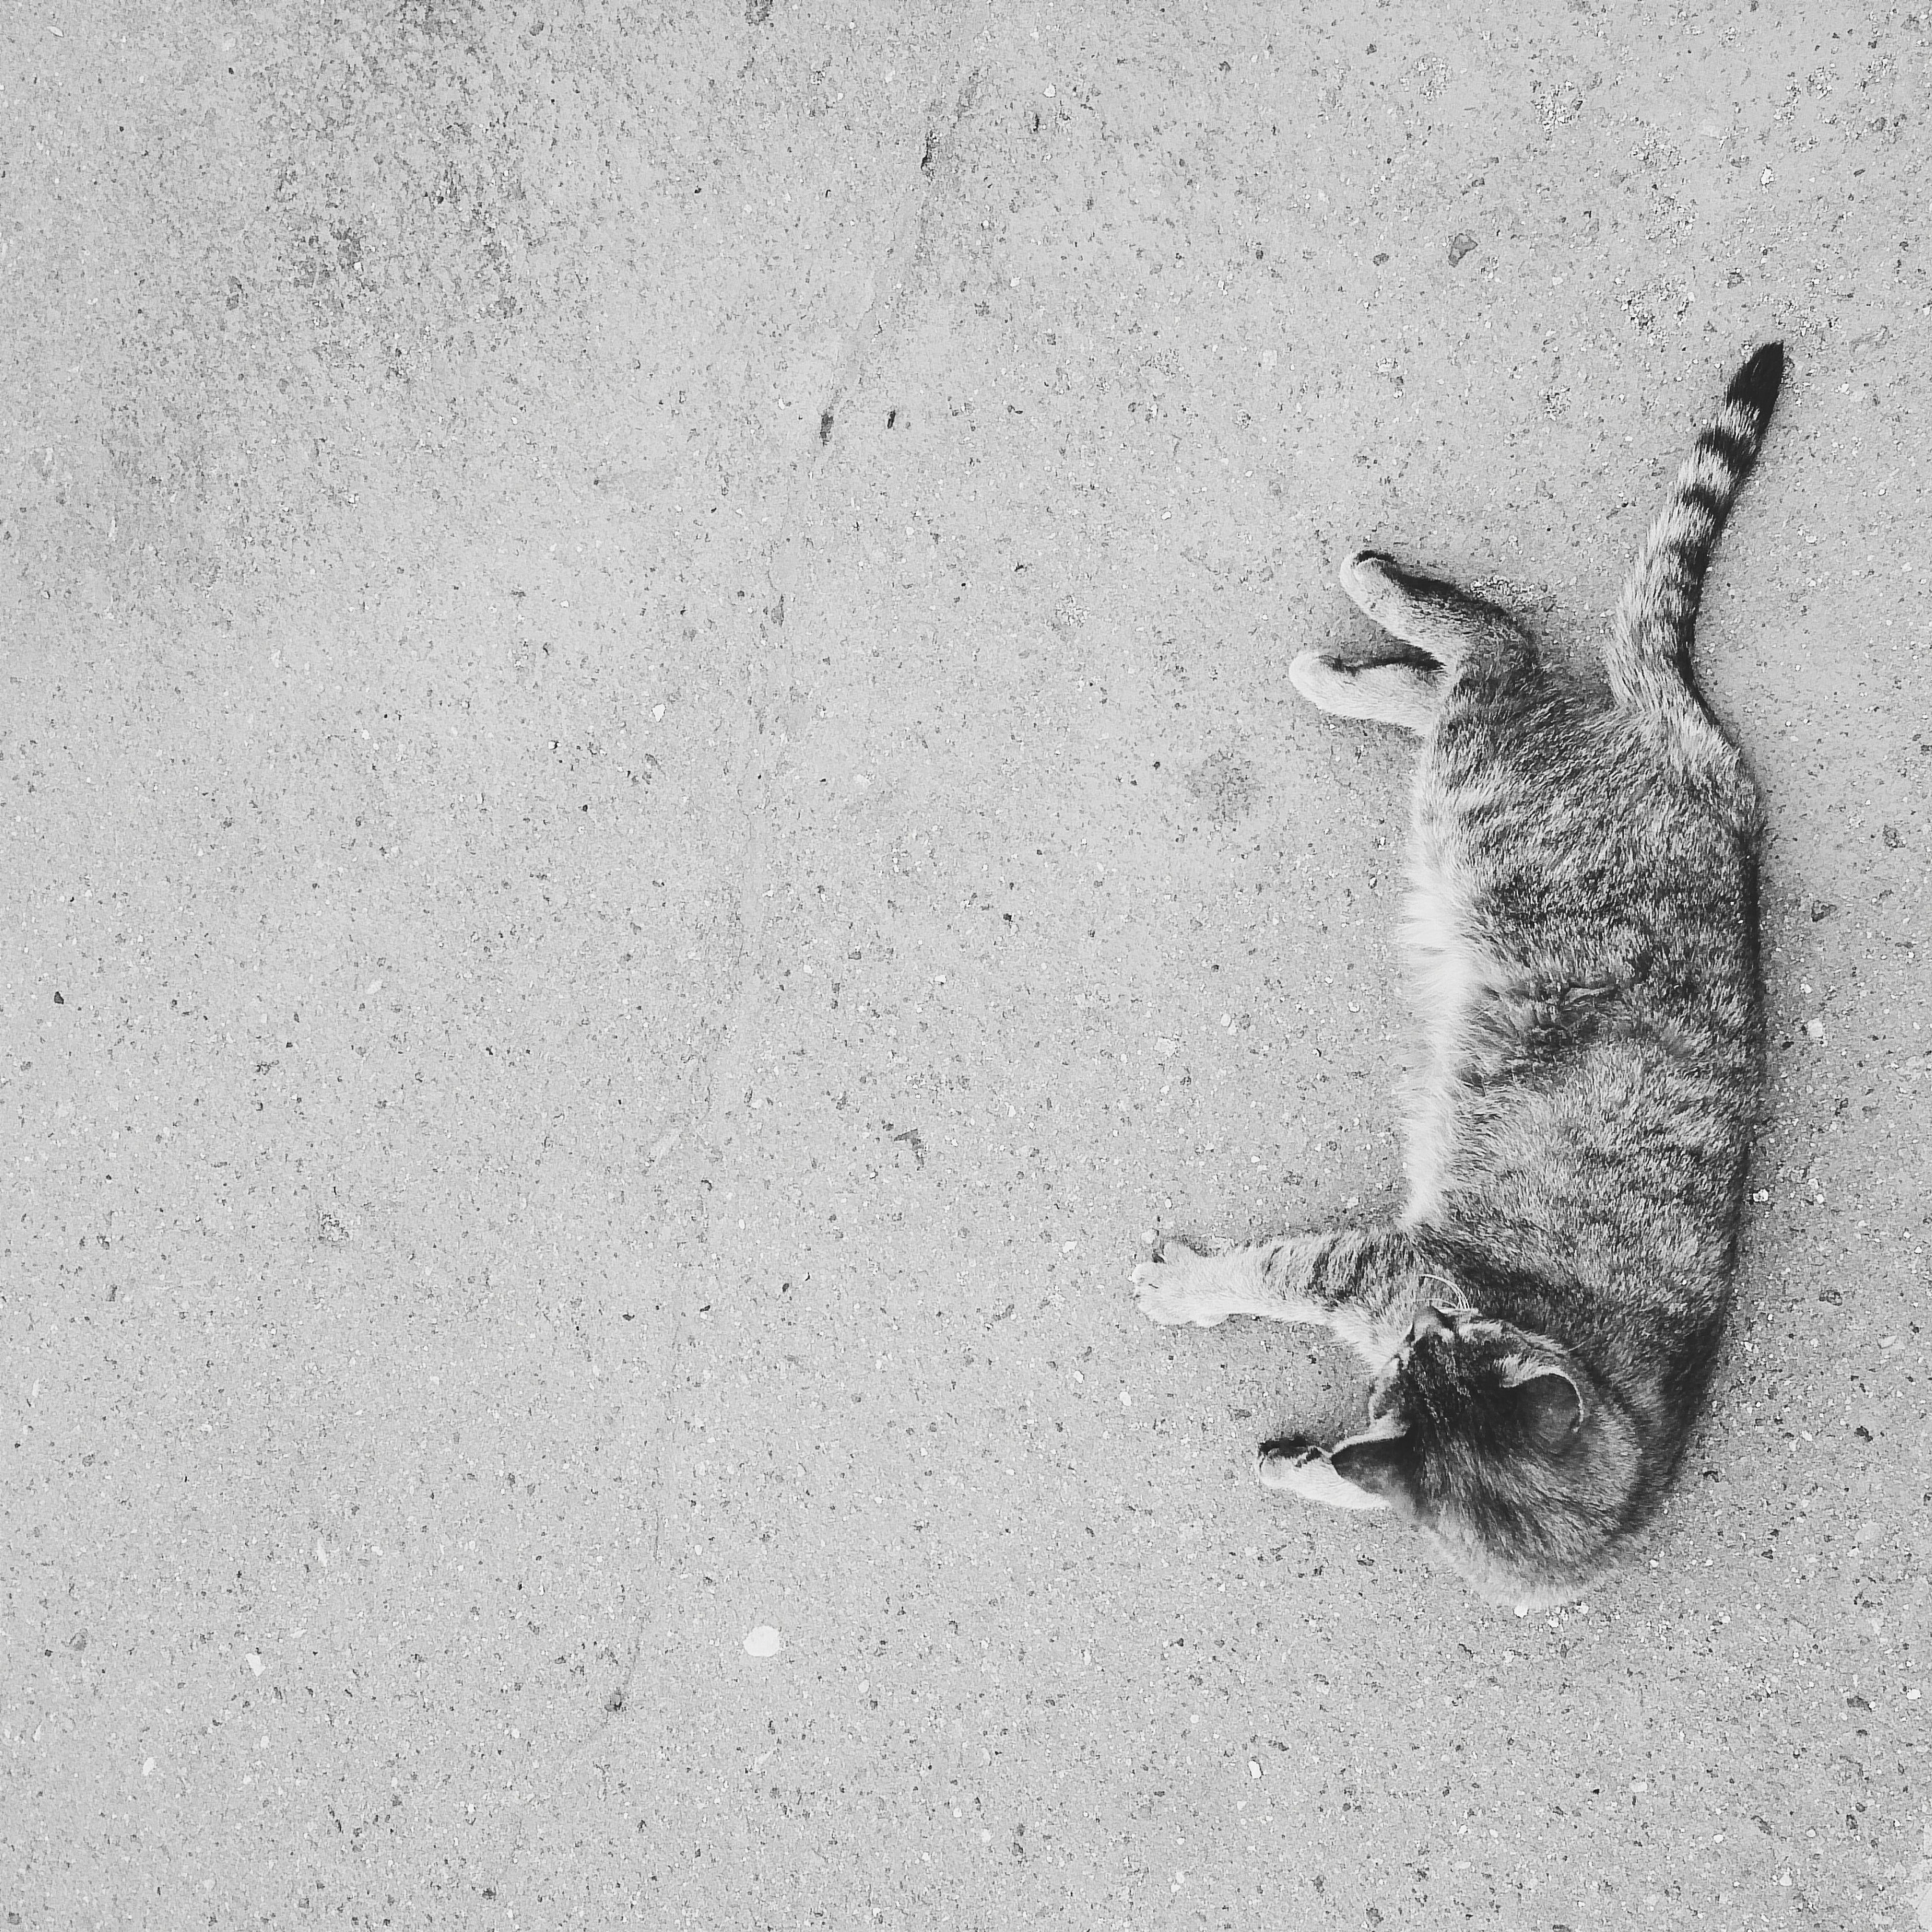 animal themes, one animal, animals in the wild, wildlife, pets, domestic animals, mammal, high angle view, domestic cat, cat, street, dog, day, wall - building feature, zoology, two animals, full length, outdoors, feline, no people